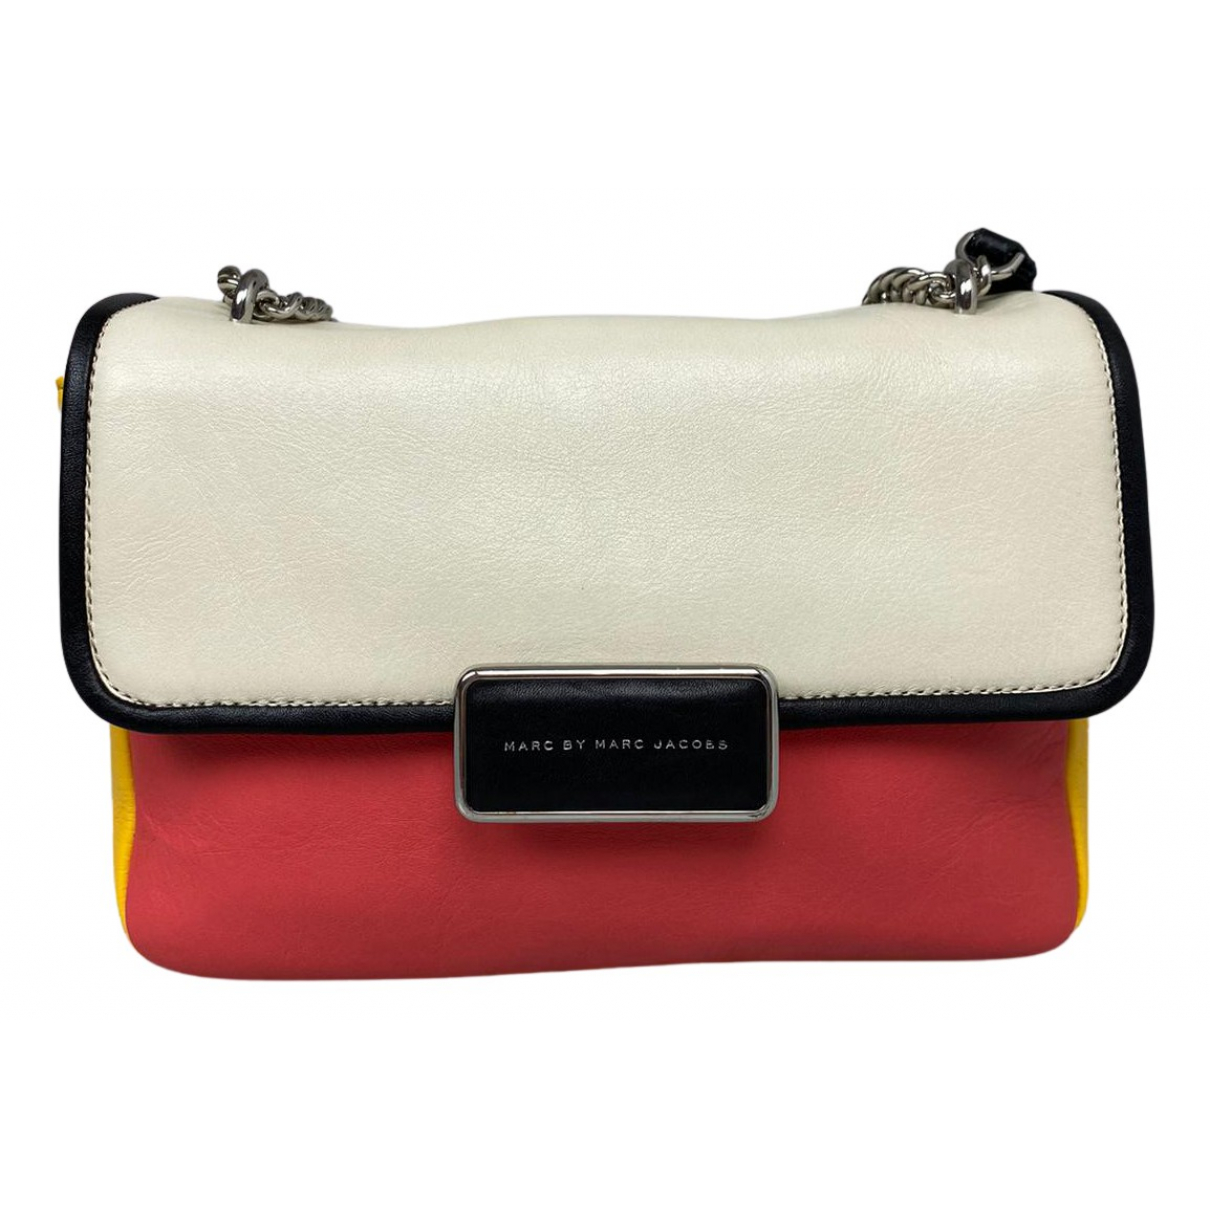 Marc By Marc Jacobs N Multicolour Leather handbag for Women N